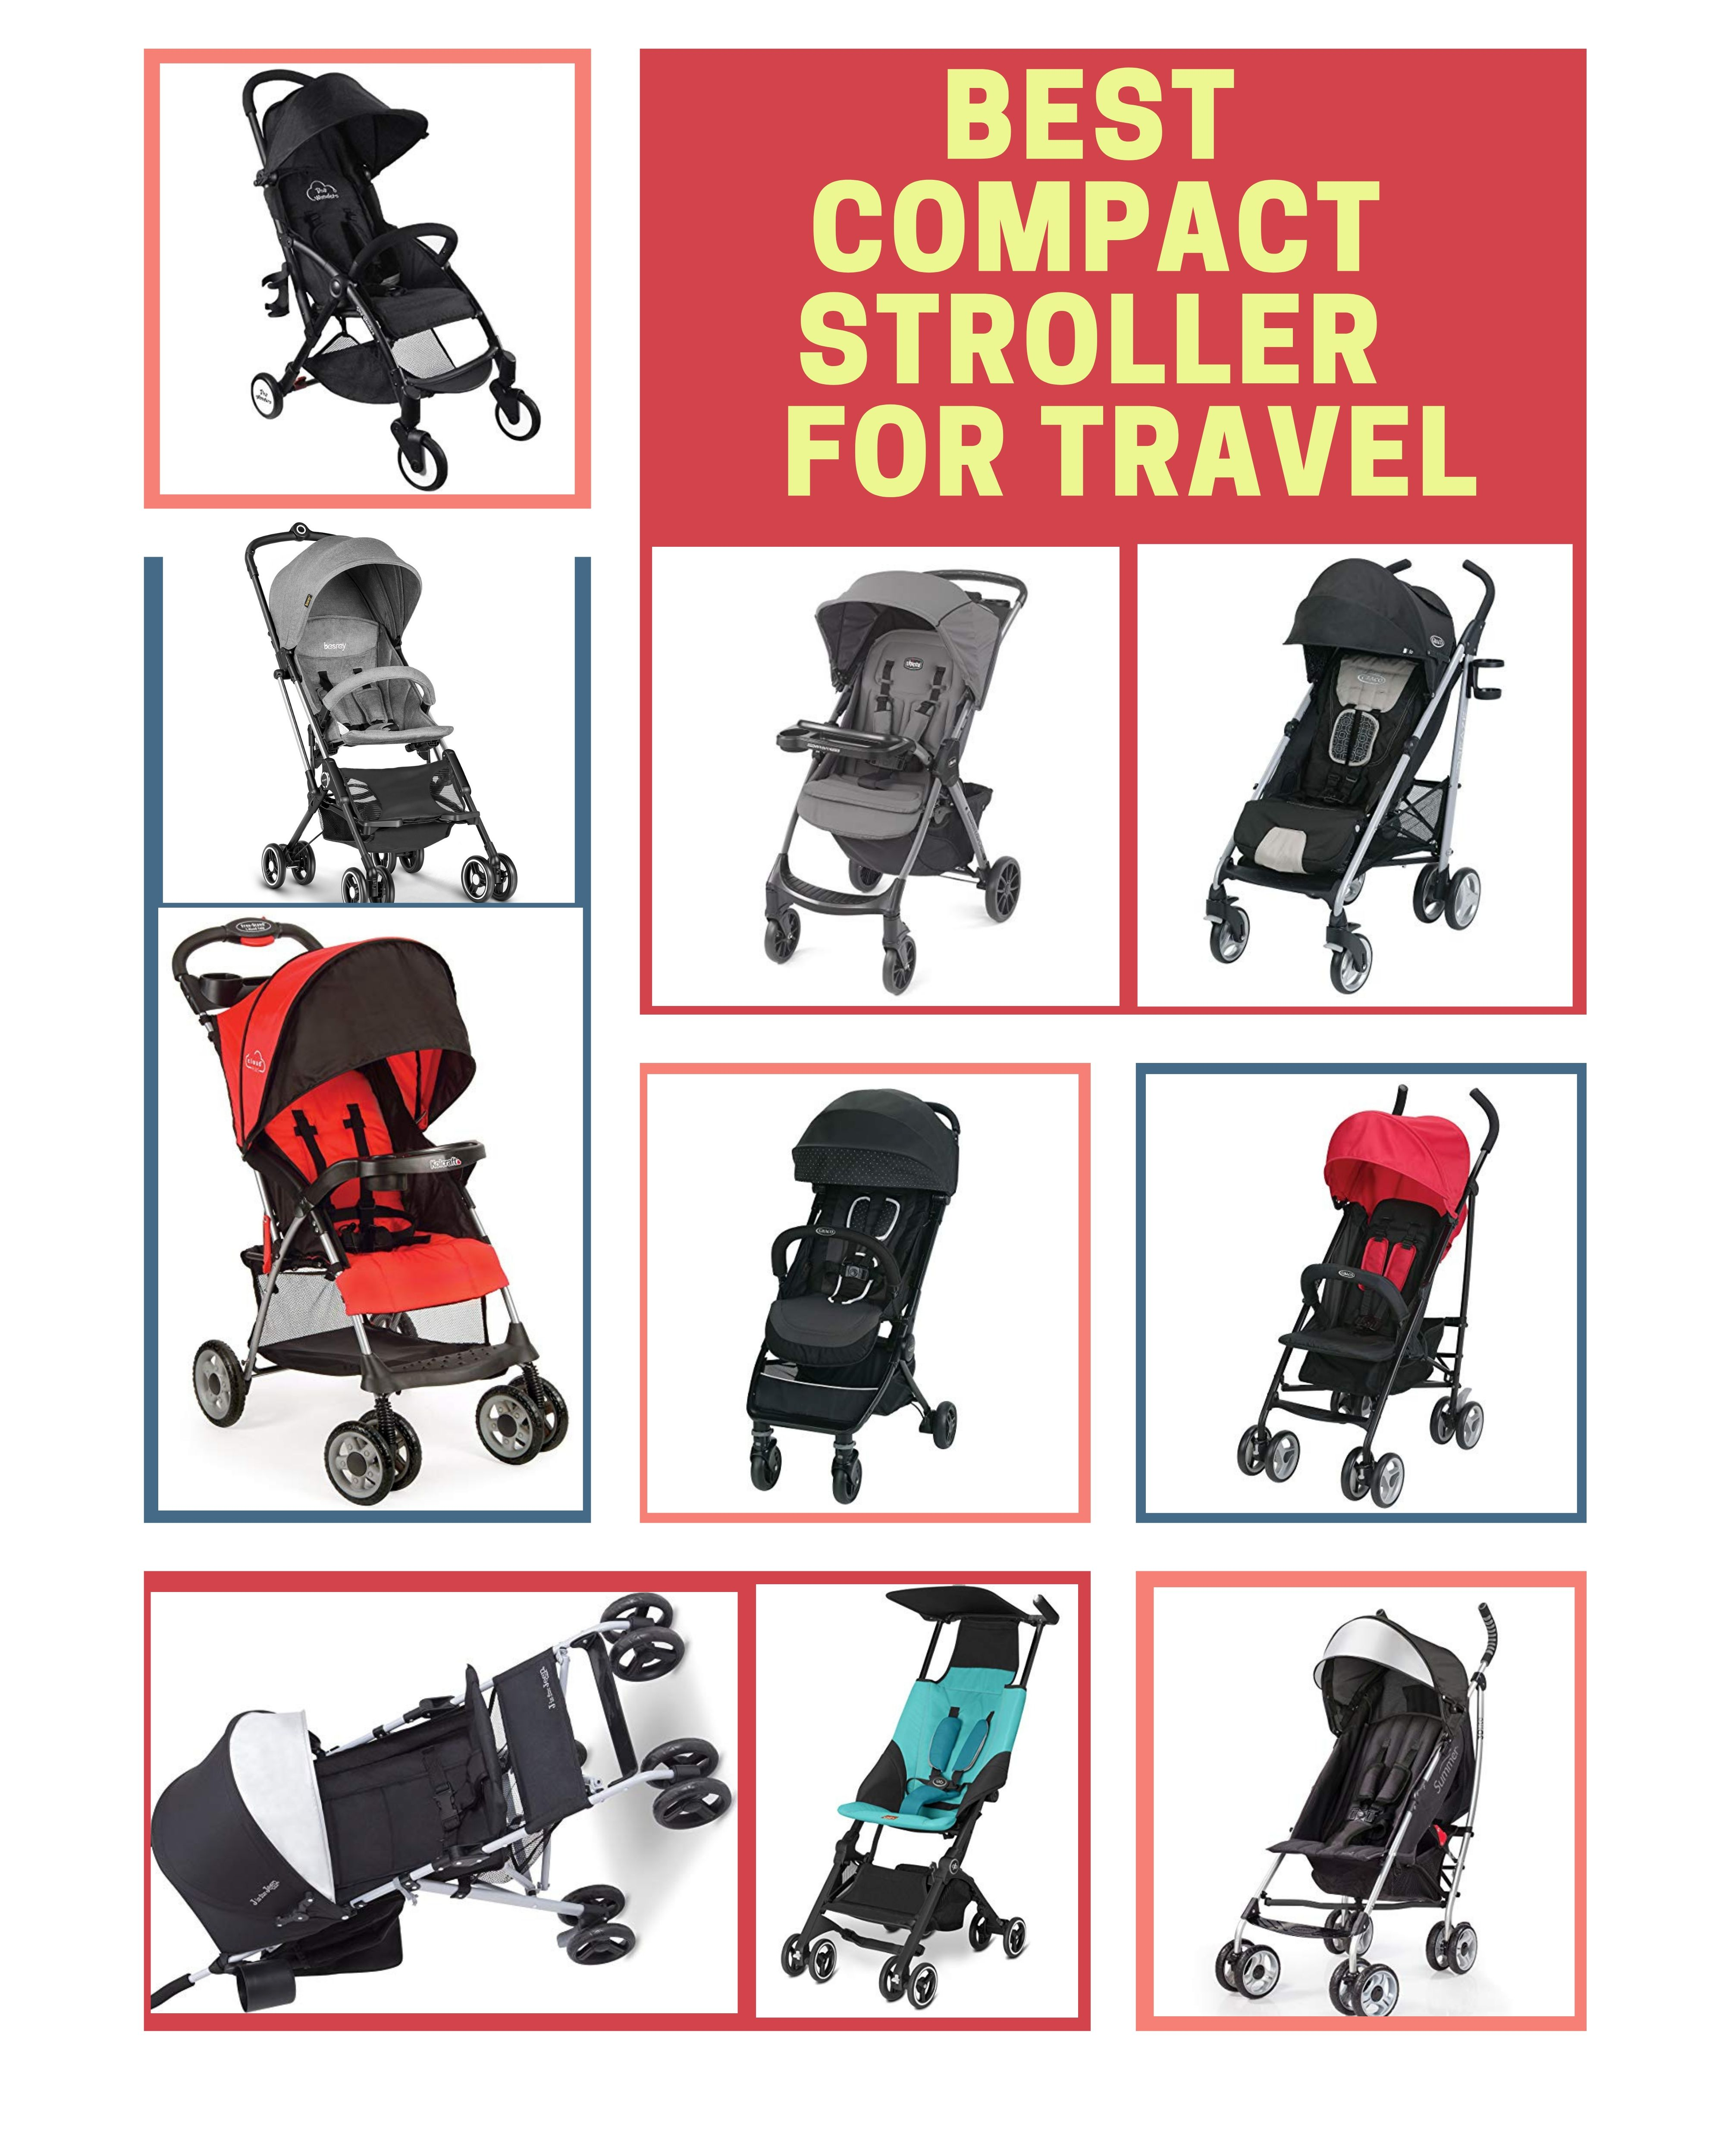 10 Best Compact Stroller For Travel (With images) Best